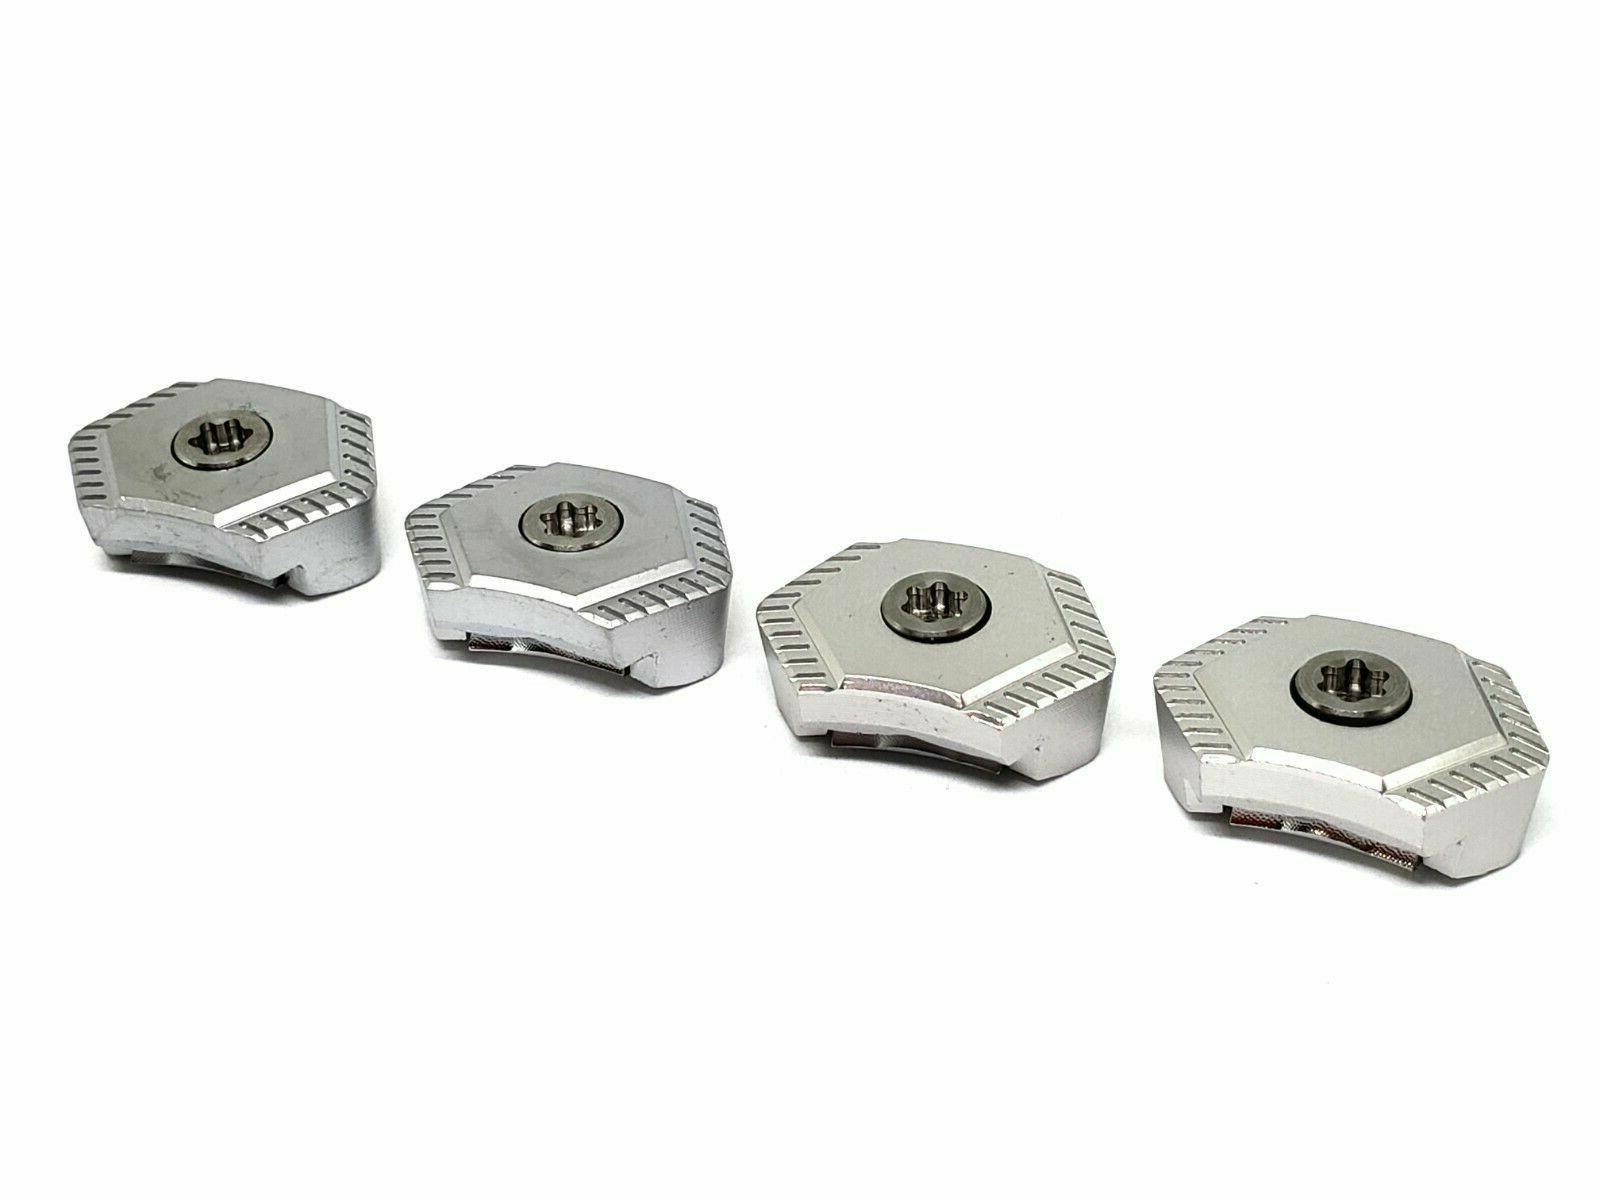 WEIGHT SCREW EPIC FLASH DRIVER 6.5,8.5,10,12,13.5.15.5,17.5or19g